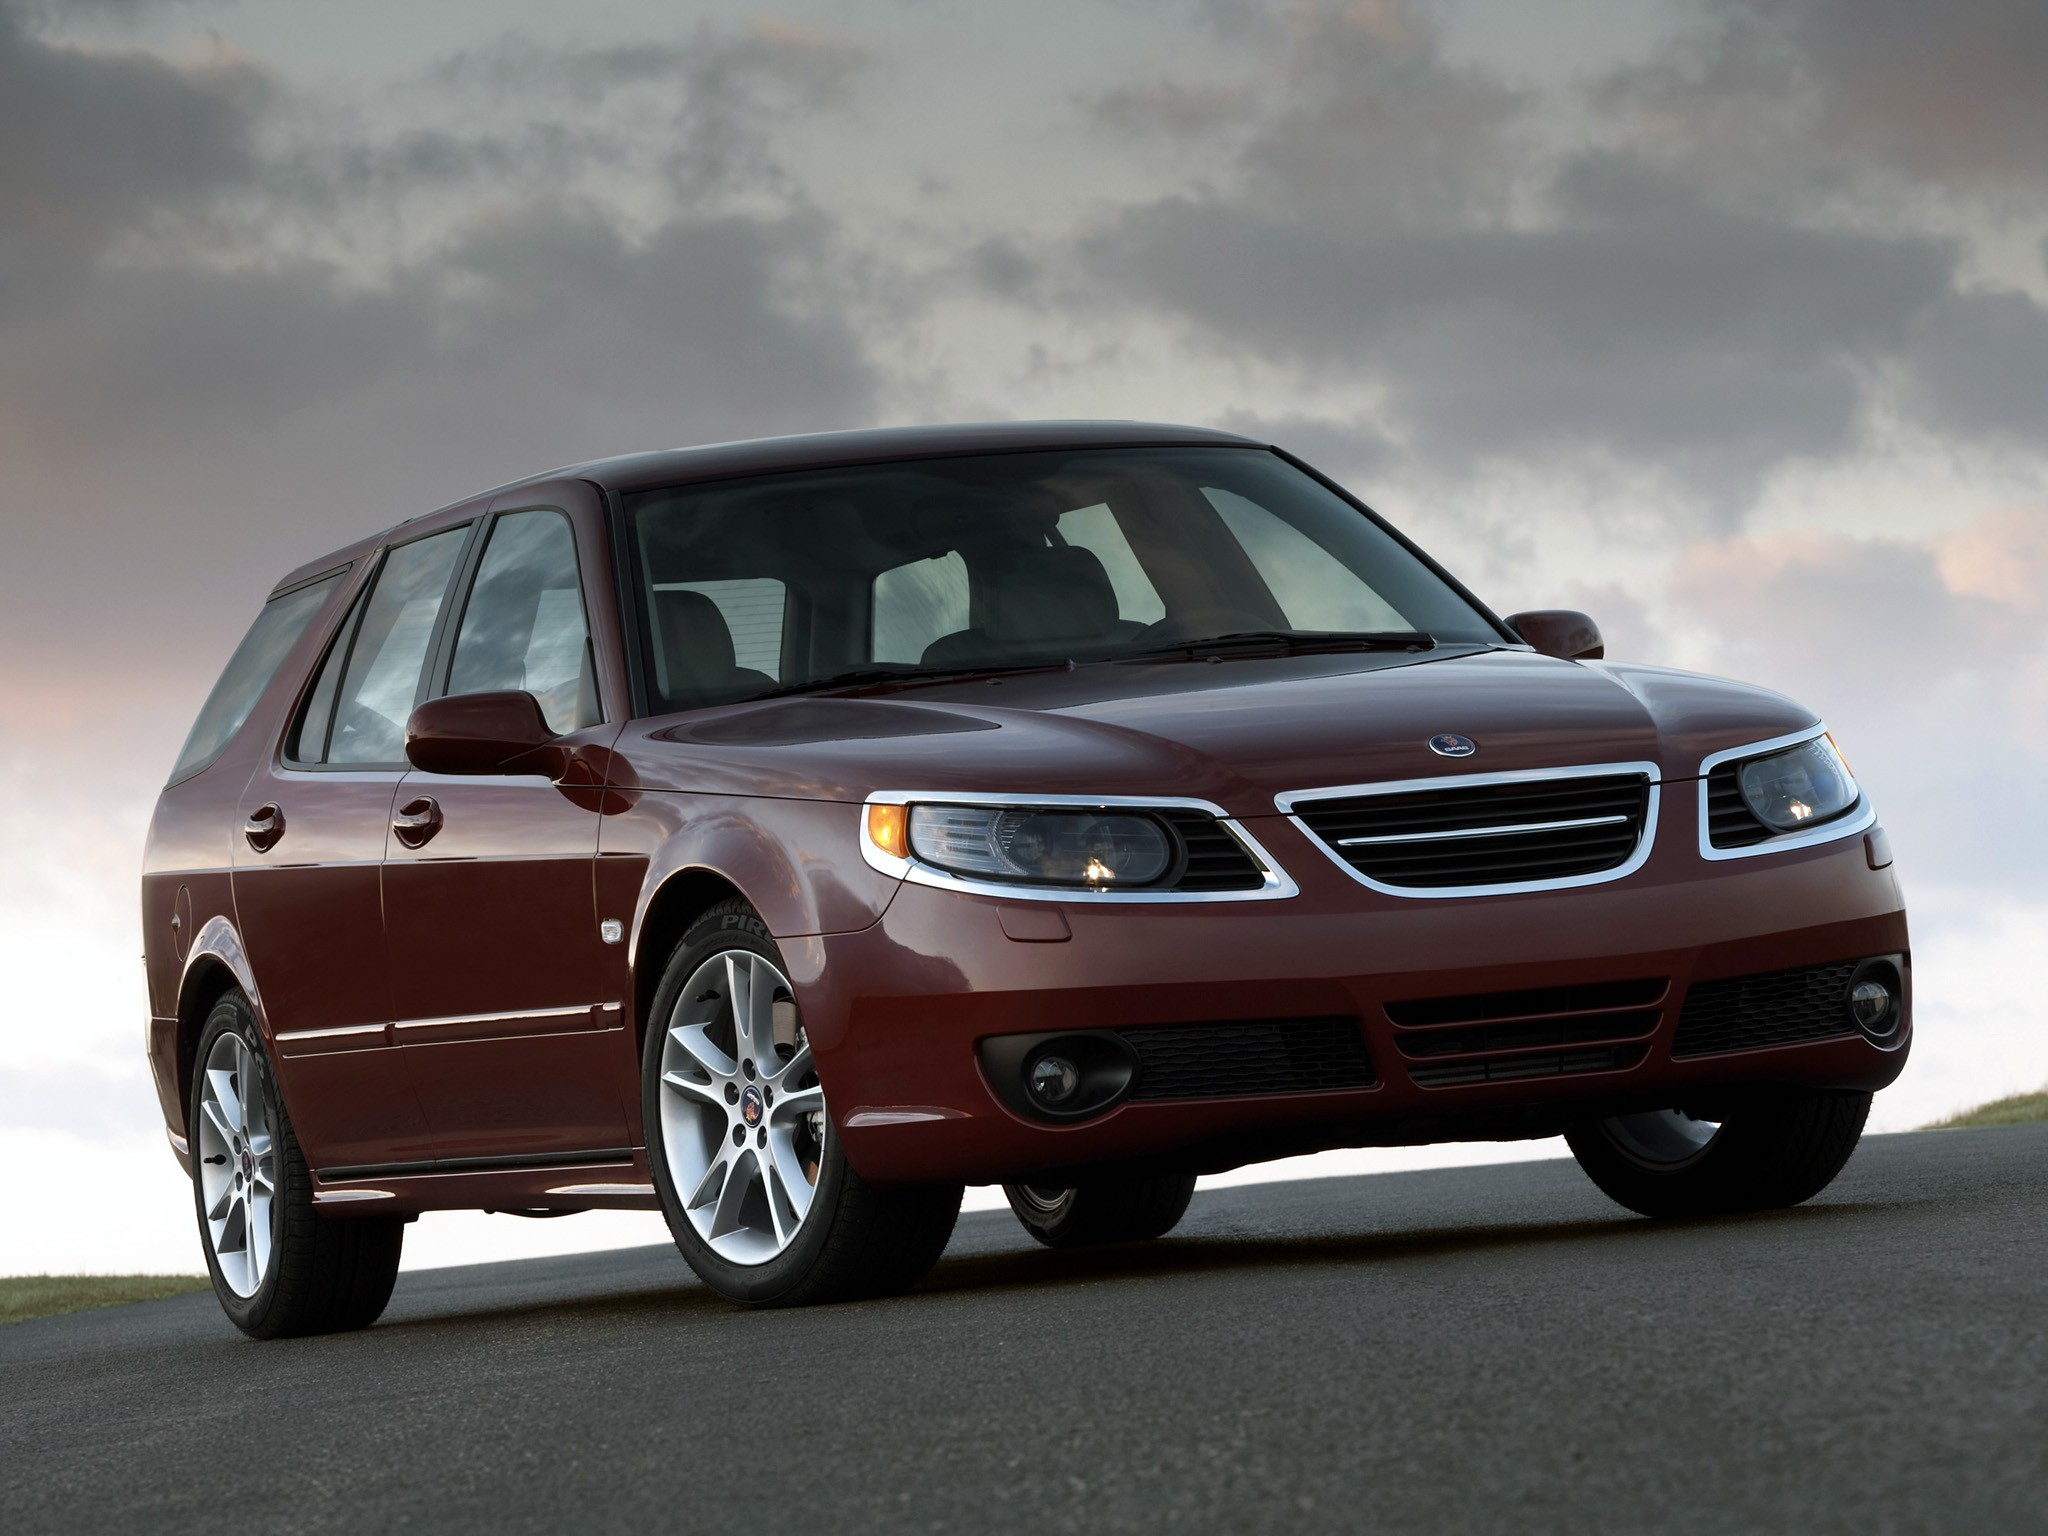 saab 9 5 sportcombi specs 2005 2006 2007 2008 2009 autoevolution. Black Bedroom Furniture Sets. Home Design Ideas